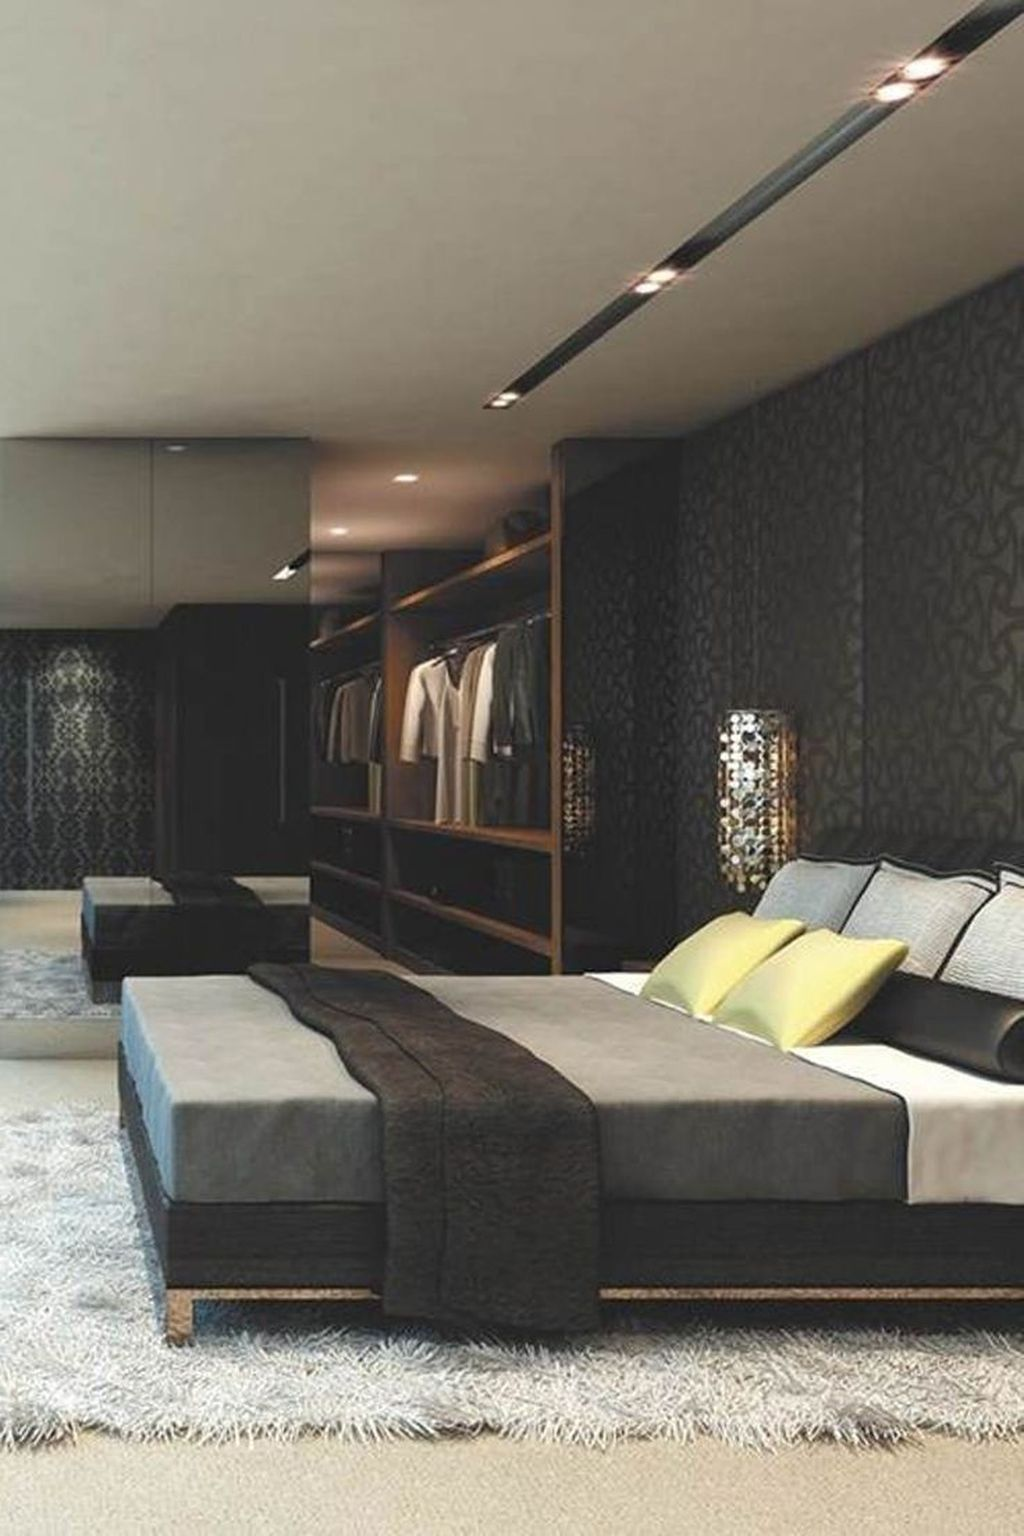 20 Modern Bedroom Decorating Ideas For Men